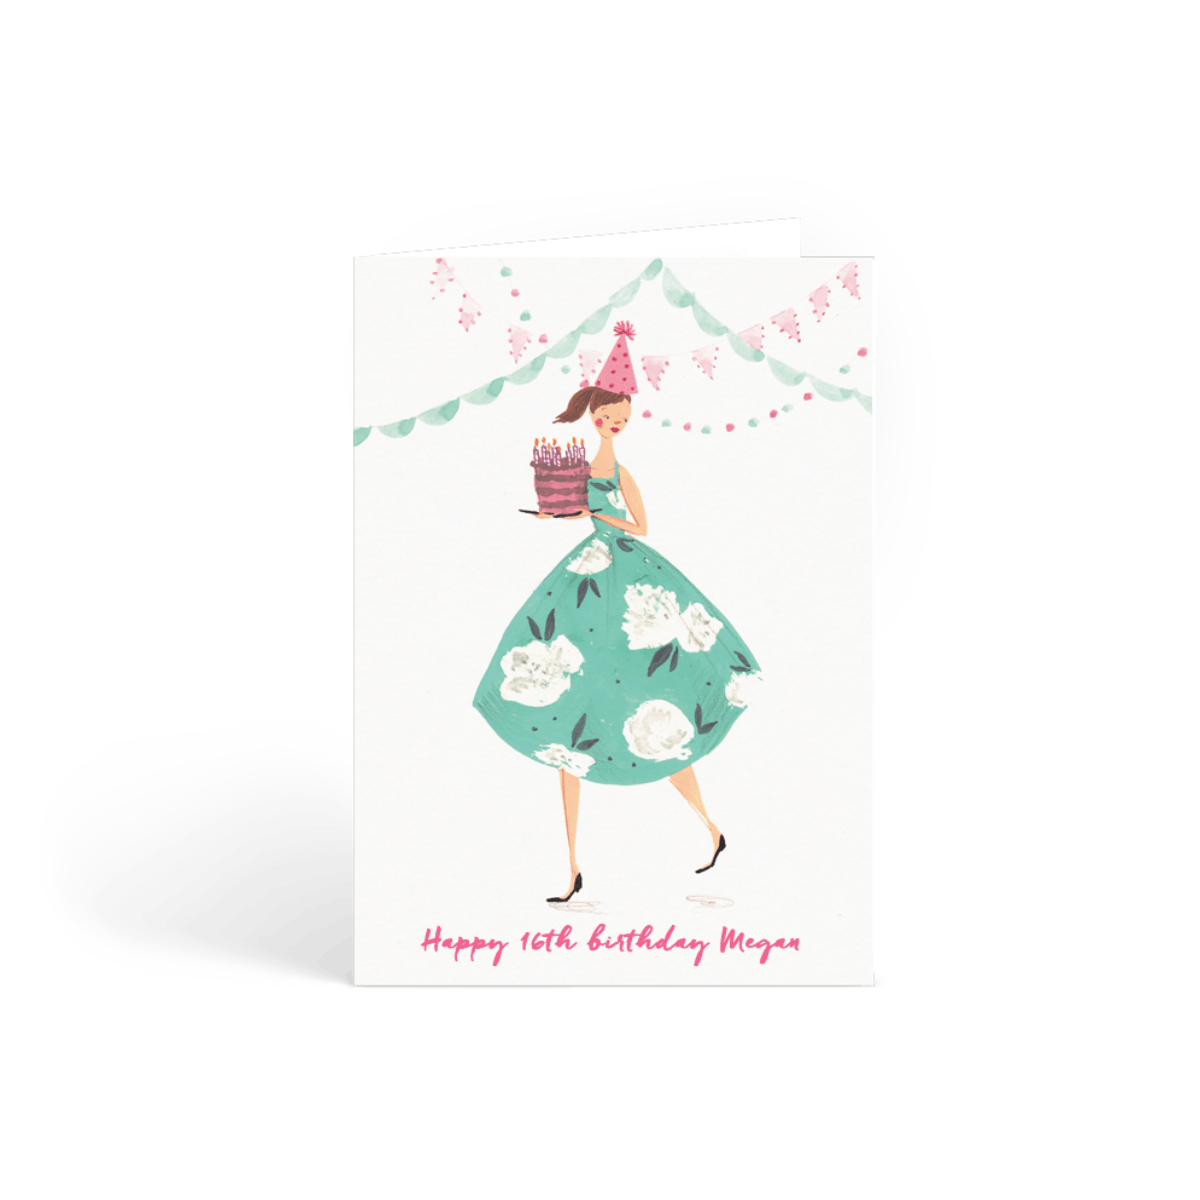 Https%3a%2f%2fwww.papier.com%2fproduct image%2f3197%2f2%2fbirthday girl 867 vorderseite 1453910700.png?ixlib=rb 1.1